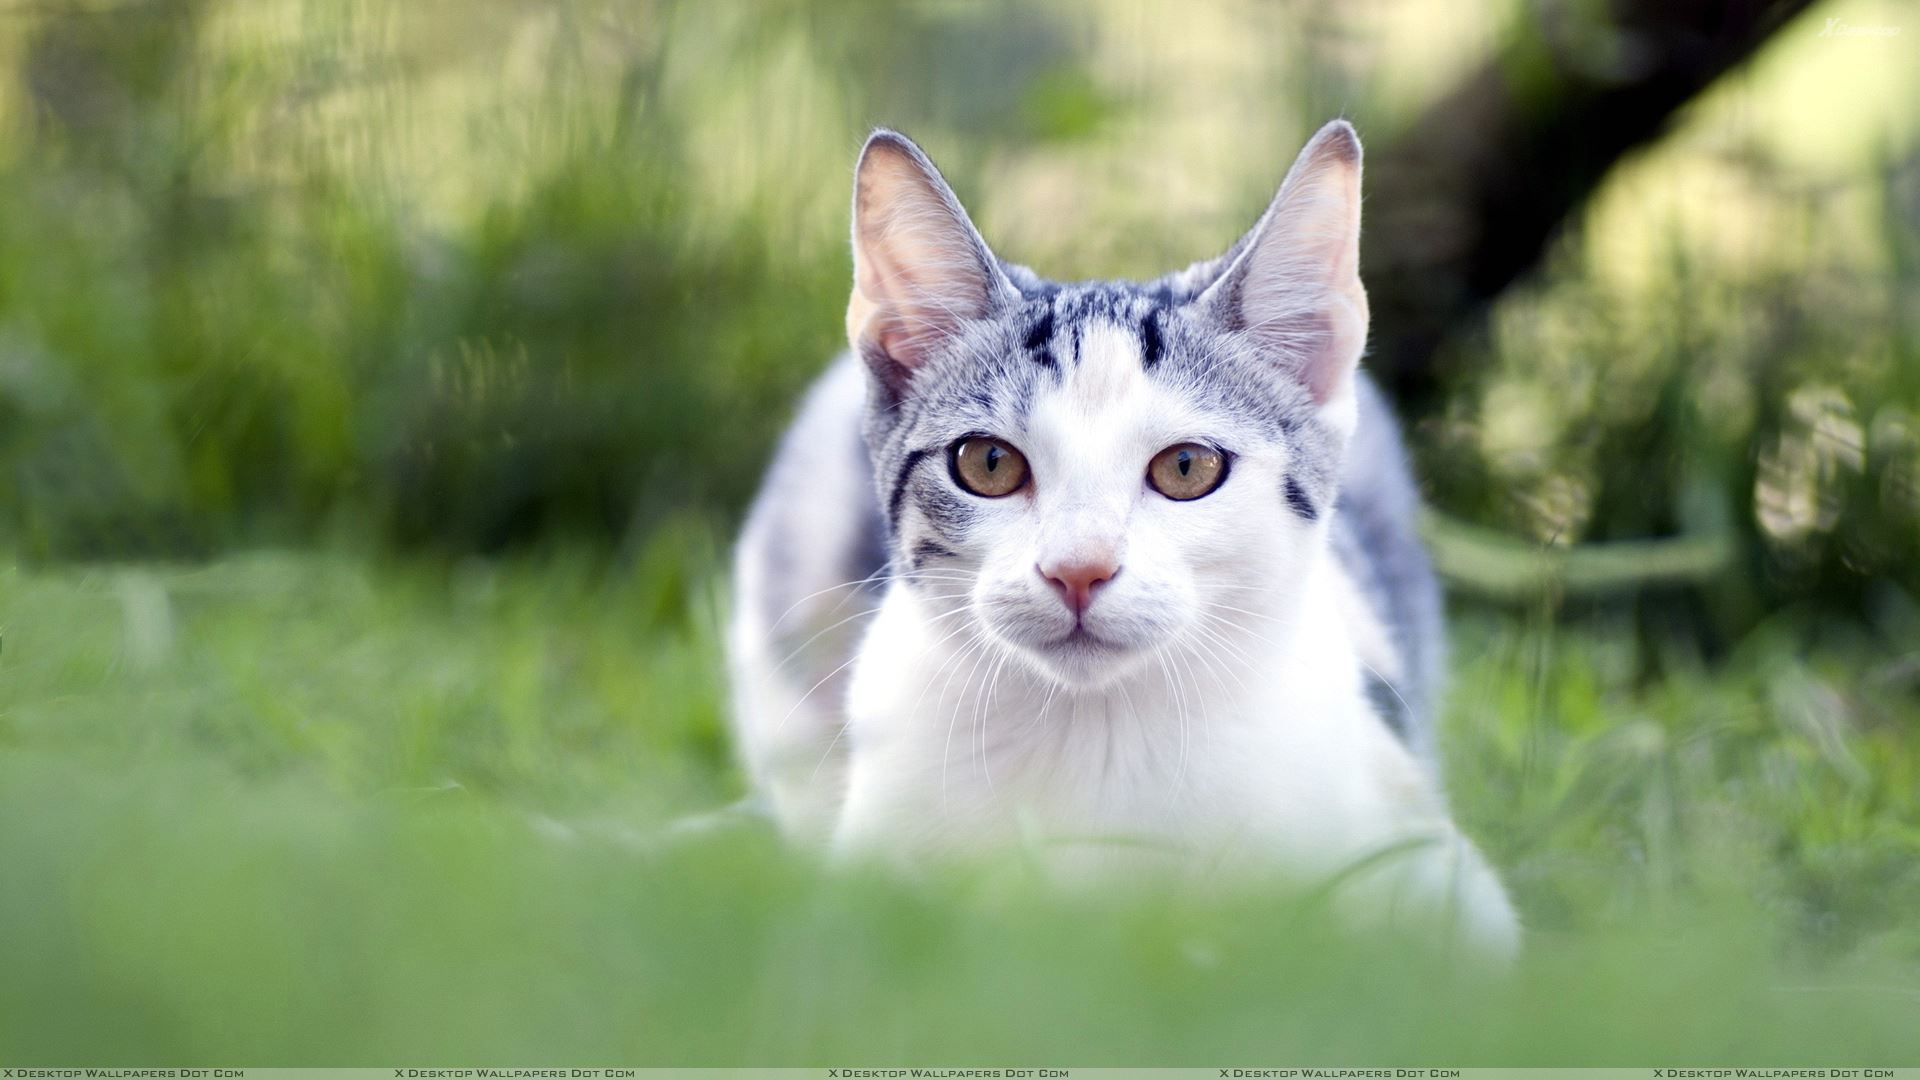 Wallpapers For Gt Cute White Cat Wallpaper